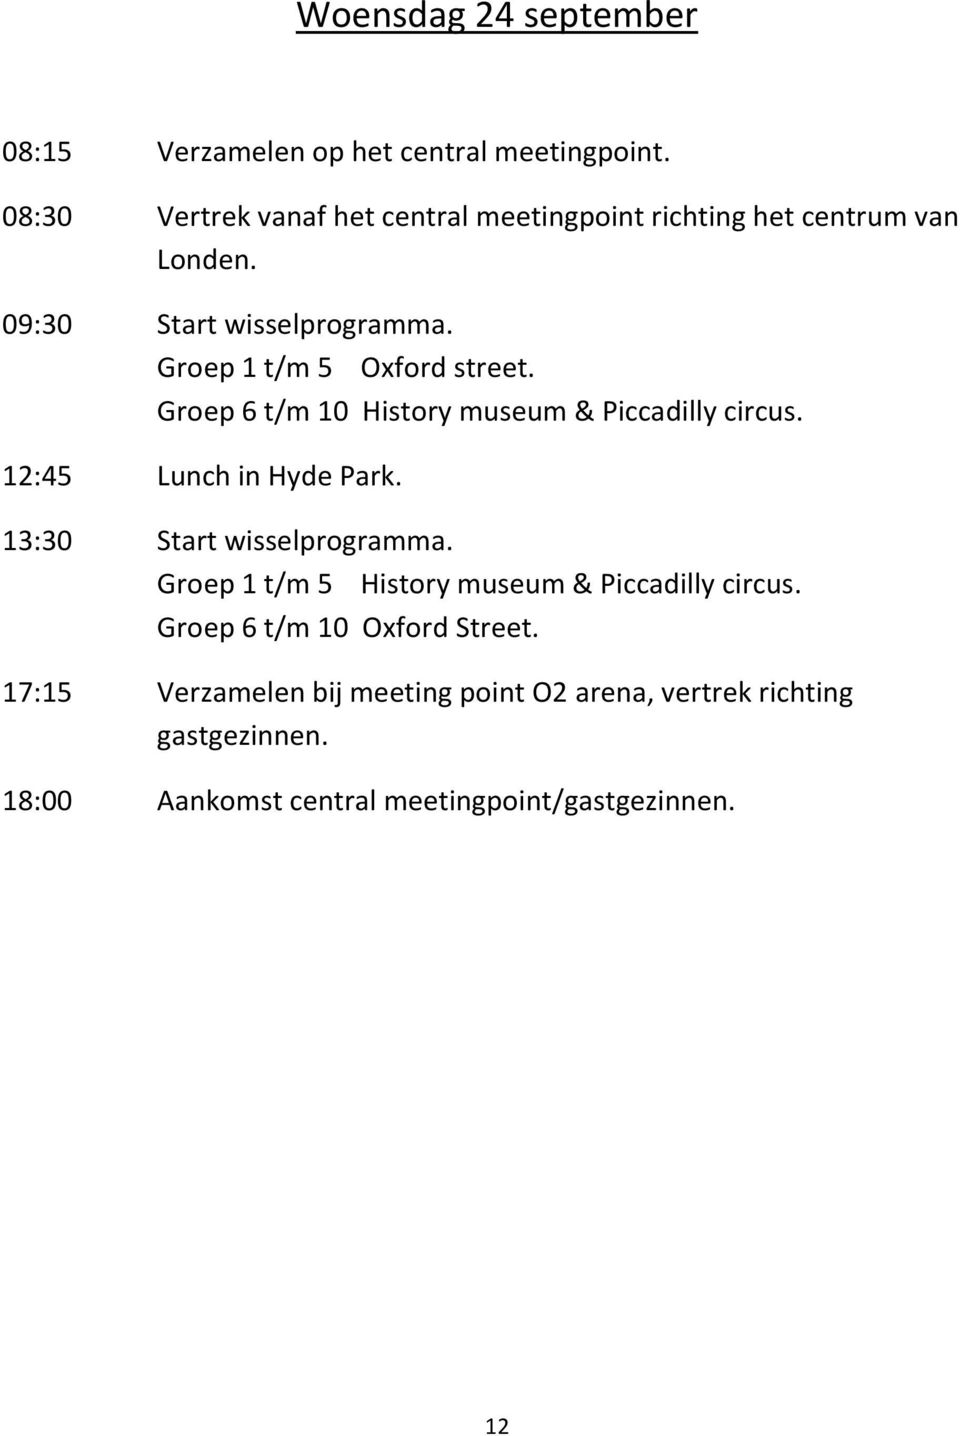 Groep 1 t/m 5 Oxford street. Groep 6 t/m 10 History museum & Piccadilly circus. 12:45 Lunch in Hyde Park.